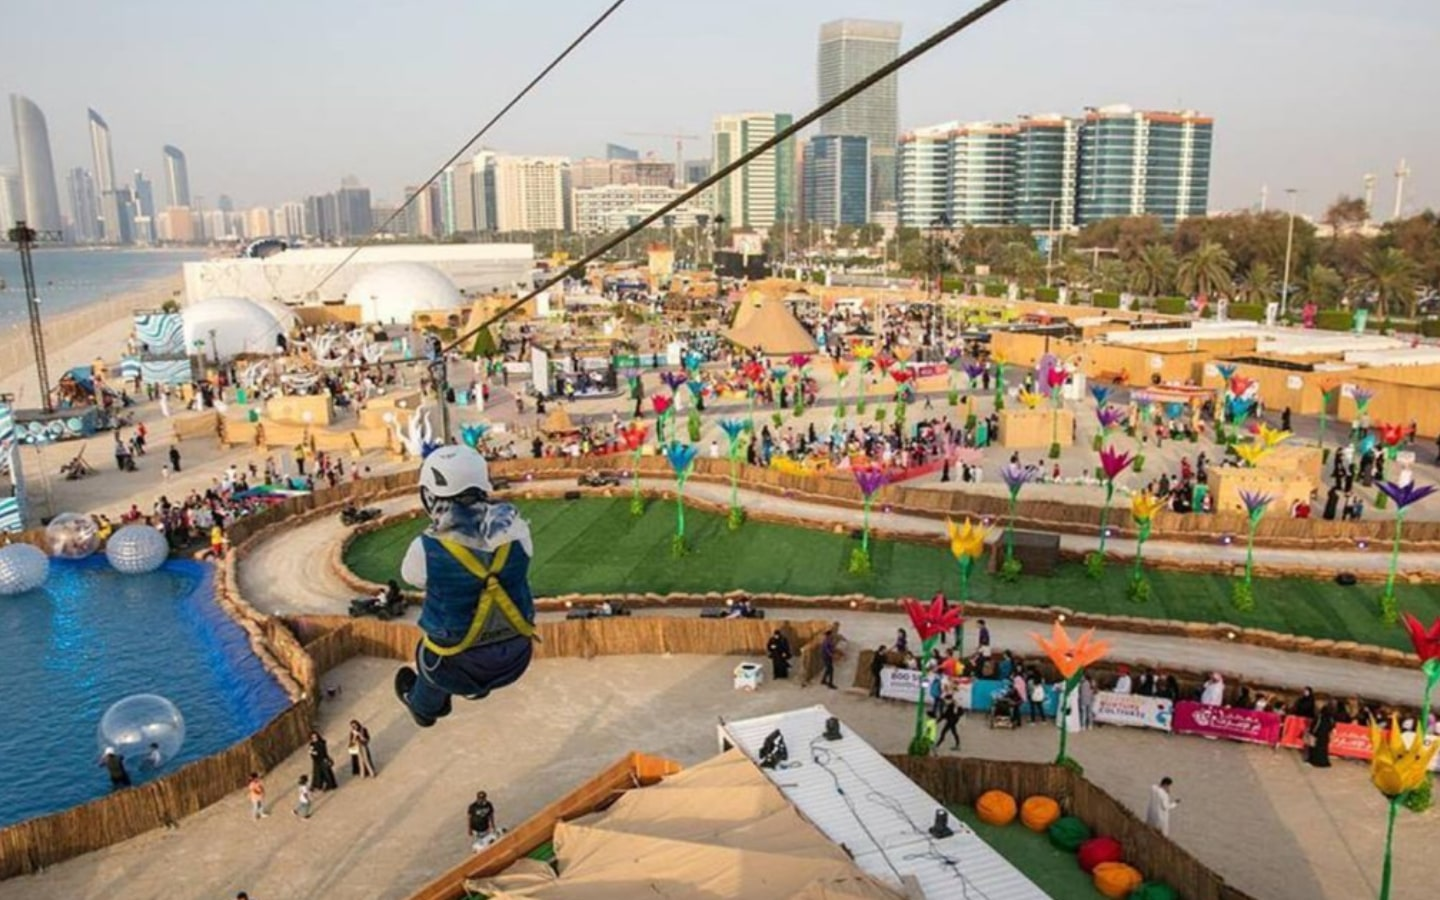 Person zip-lining at Al Bahar at Abu Dhabi Corniche, one of the outdoor attractions in Abu Dhabi